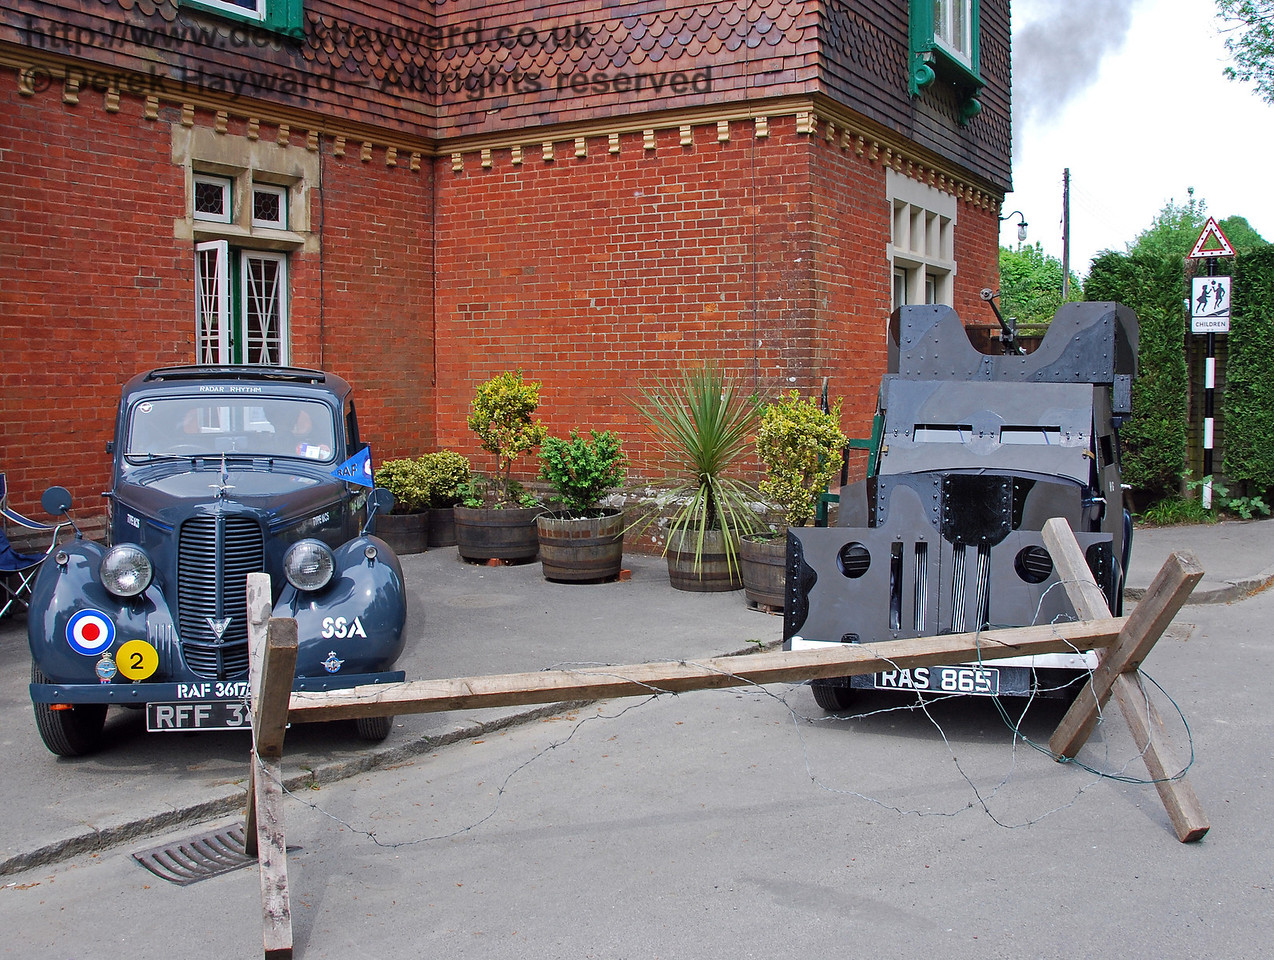 Wartime vehicles outside Horsted Keynes. 10.05.2008